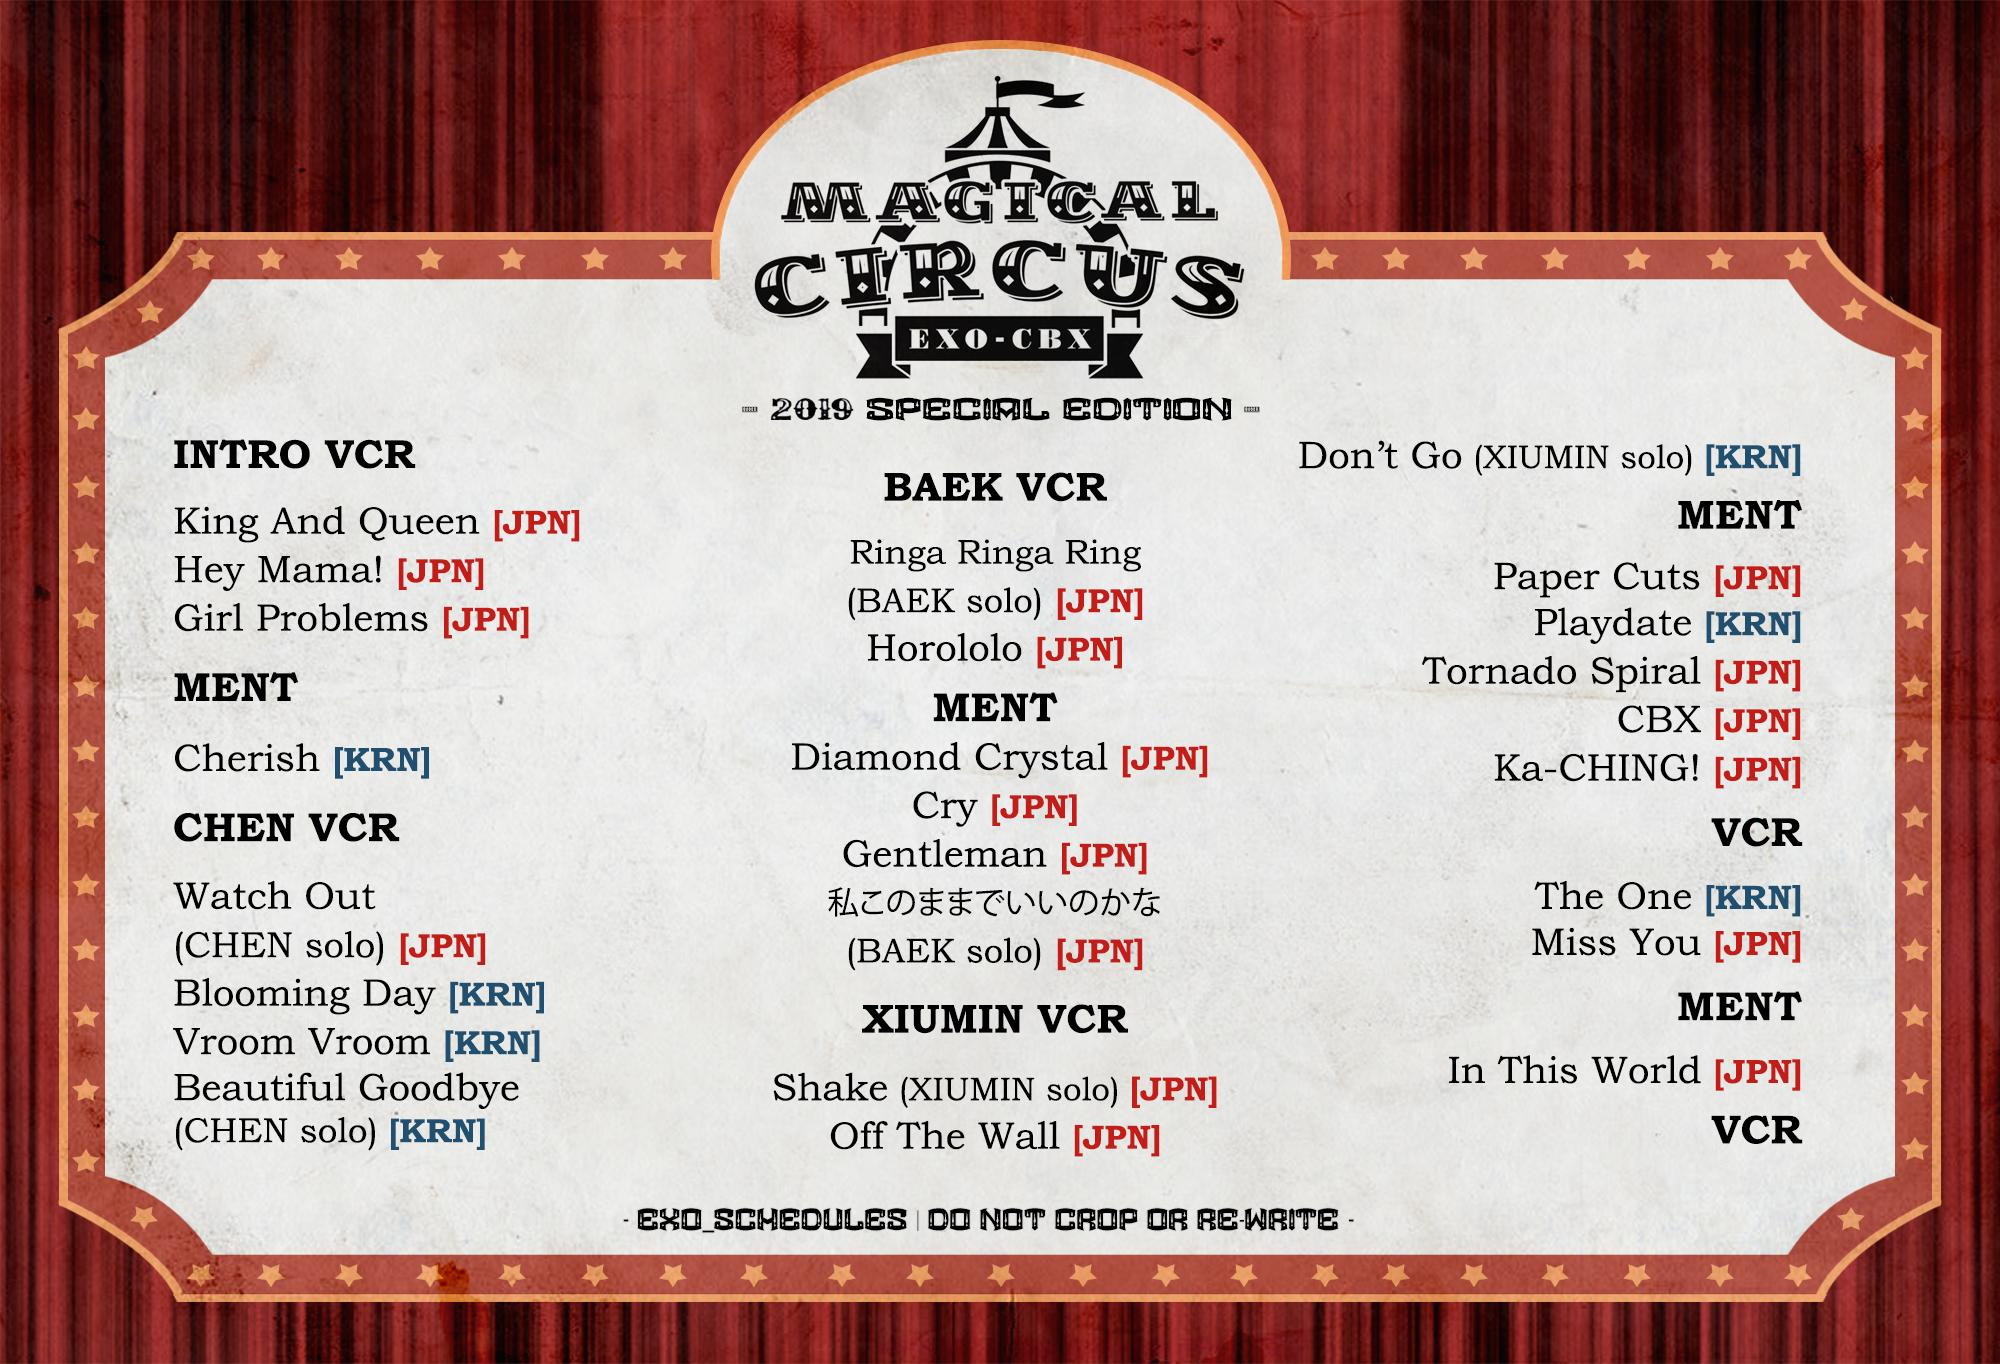 Exo Schedule On Twitter Exo Cbx Magical Circus Tour 2019 Special Edition Set List Based On Saitama D1 Cbx Magicalcircus 2019 Specialedition Exo Cbx Exo Cbx Weareoneexo Https T Co Xzzyjbbzzr